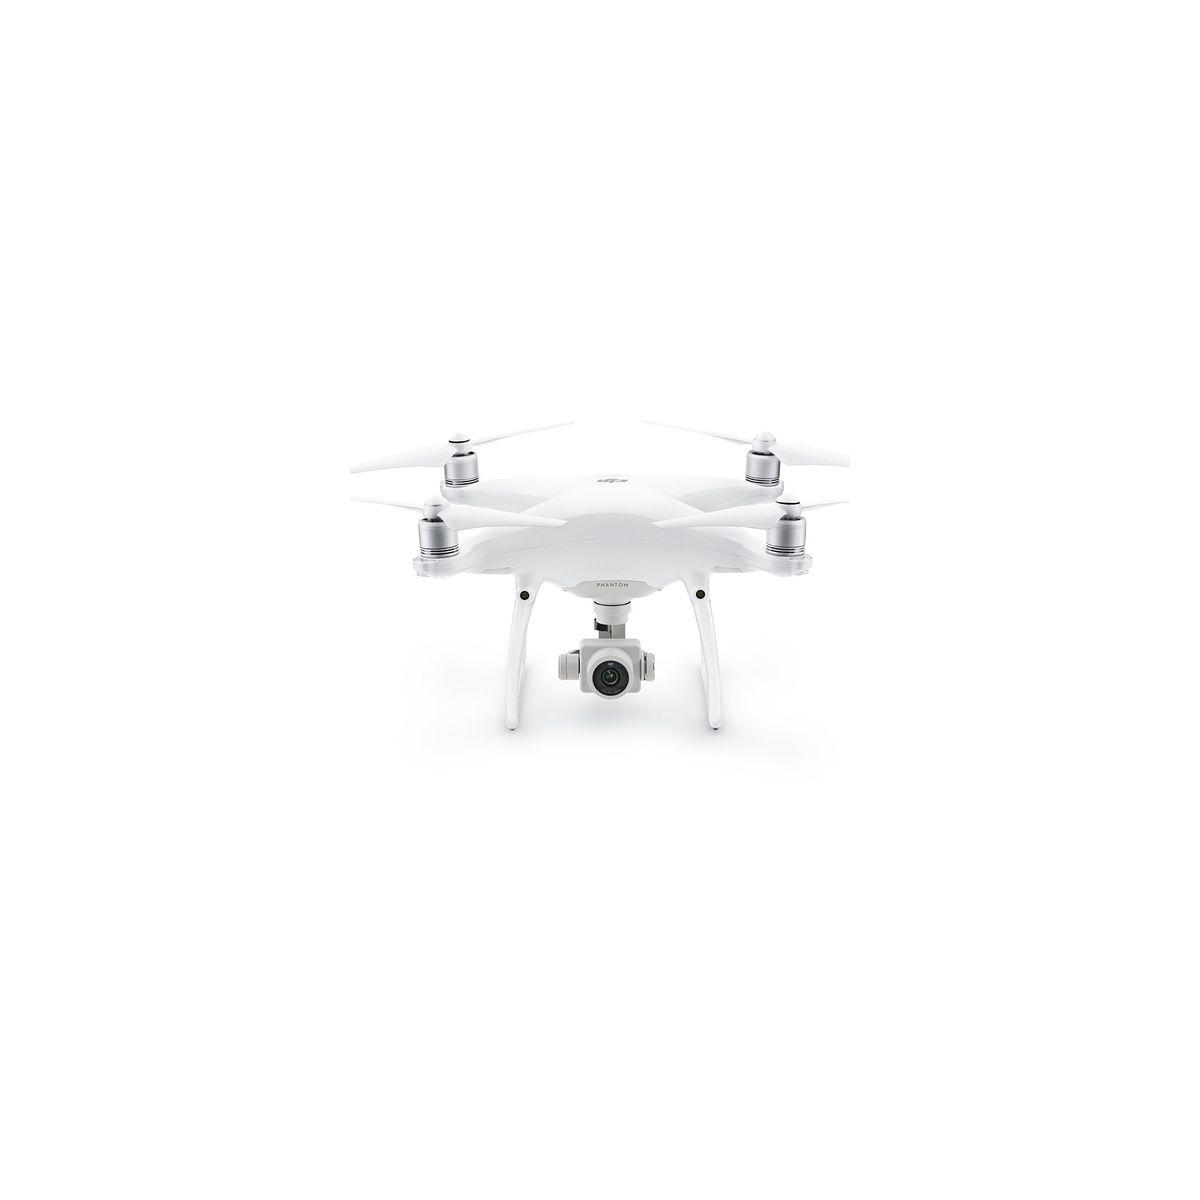 Drones dji phantom 4 advanced - 7% de remise immédiate avec le code : anniv7 (photo)